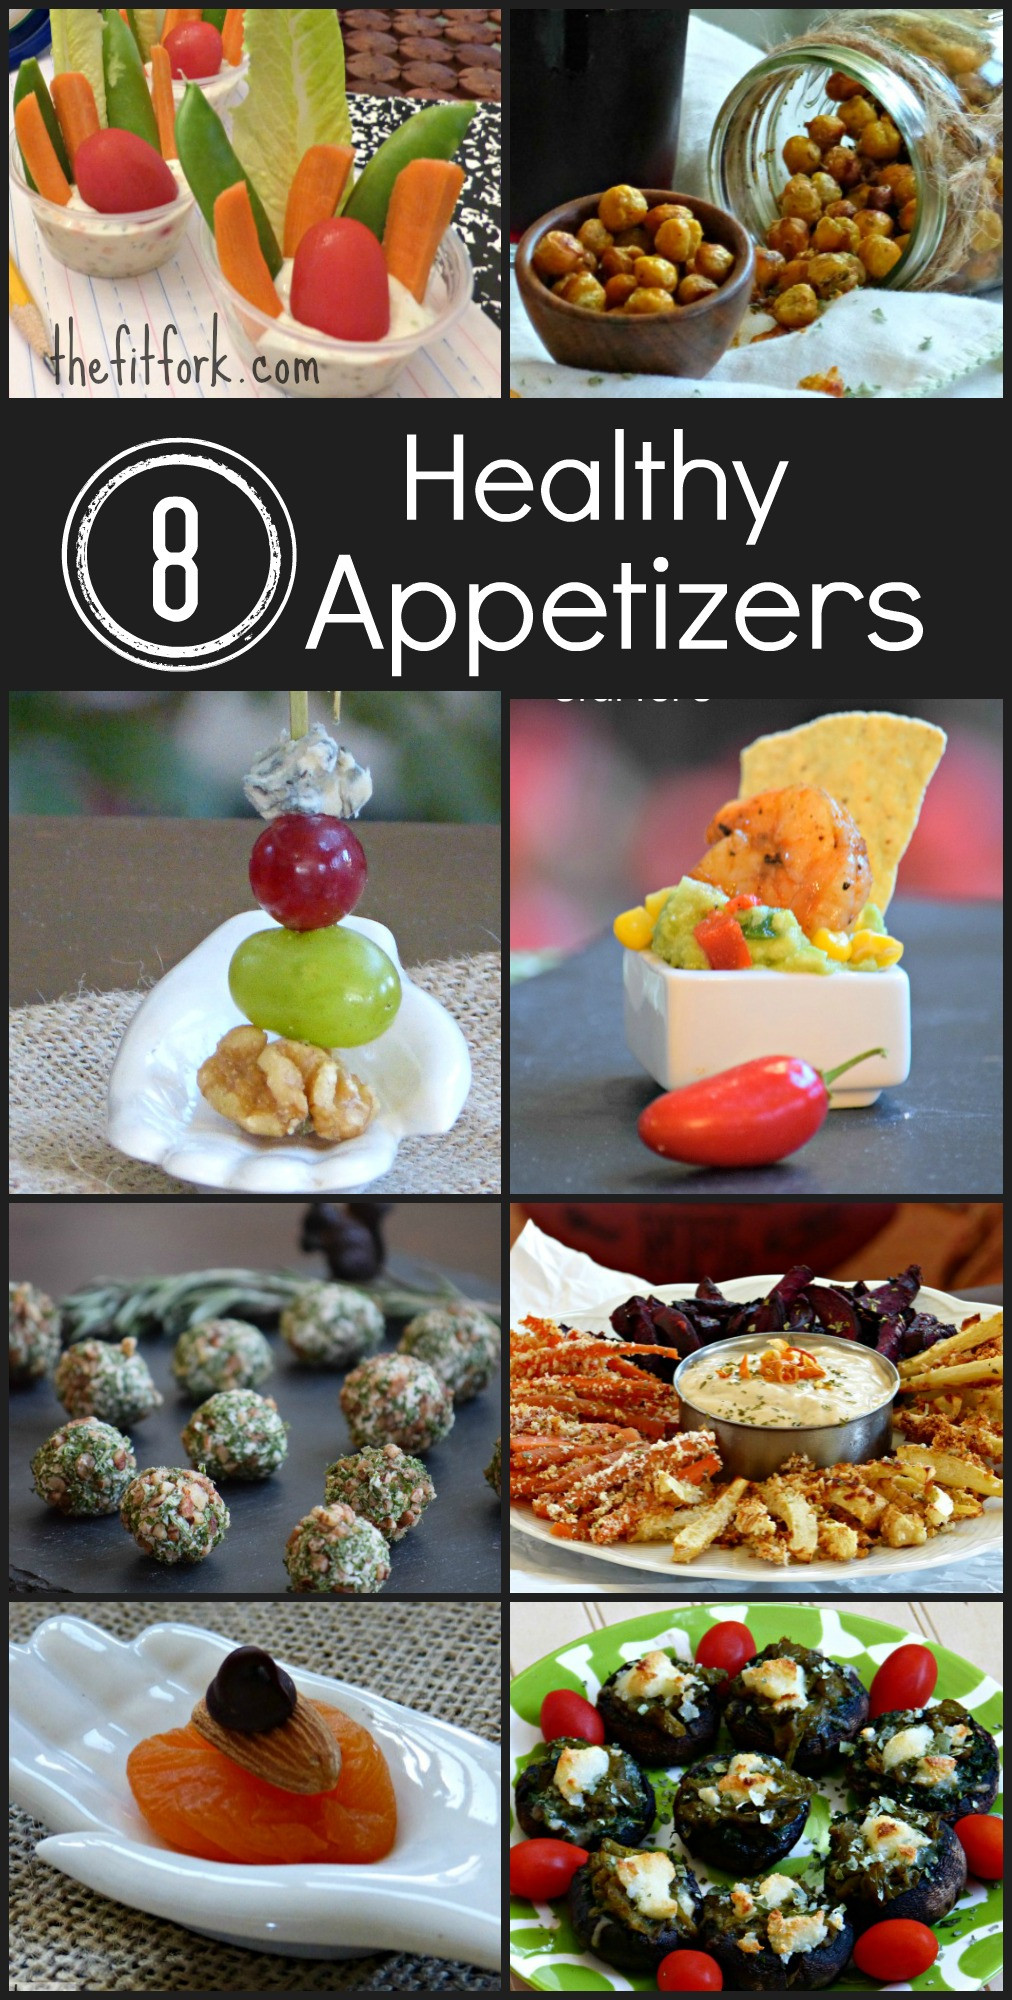 Healthy Appetizers For Party  Lettuce Party 8 Healthy Appetizers for New Year's Eve